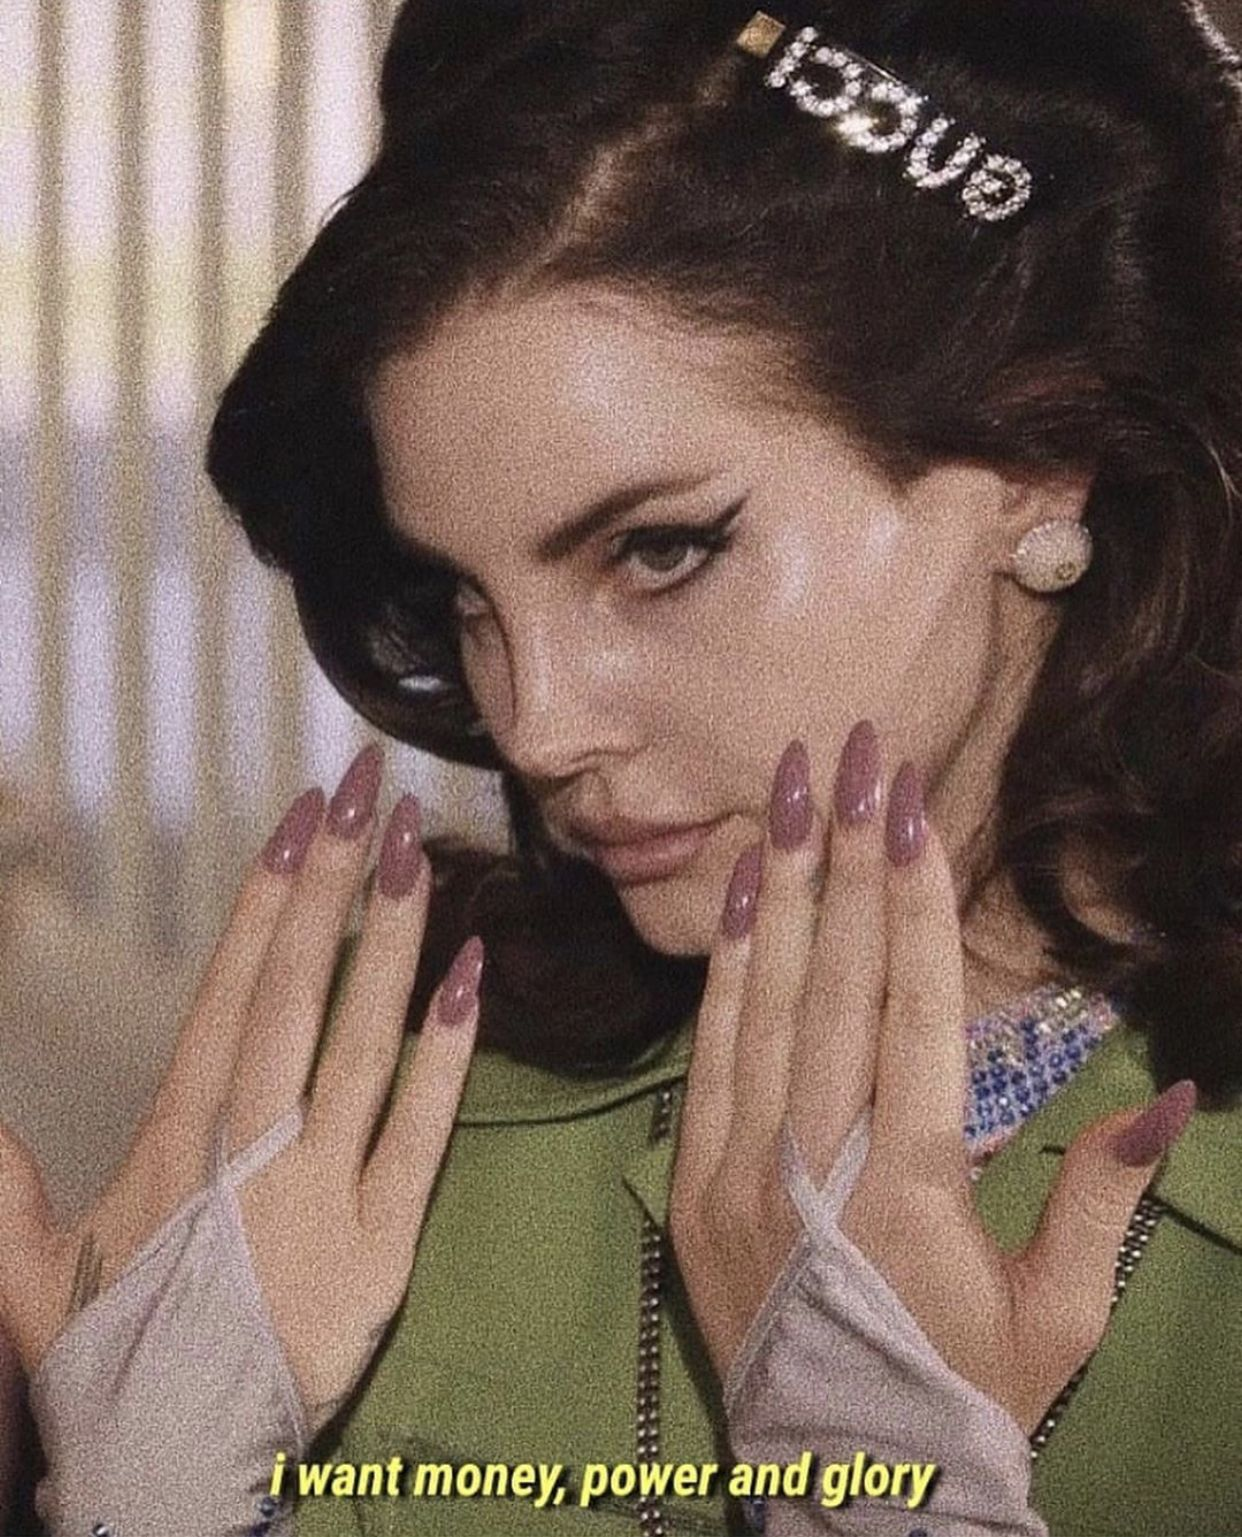 Lana Del Rey Opens Up About 'Lust for Life,' Telling Her Story, and the Women's March